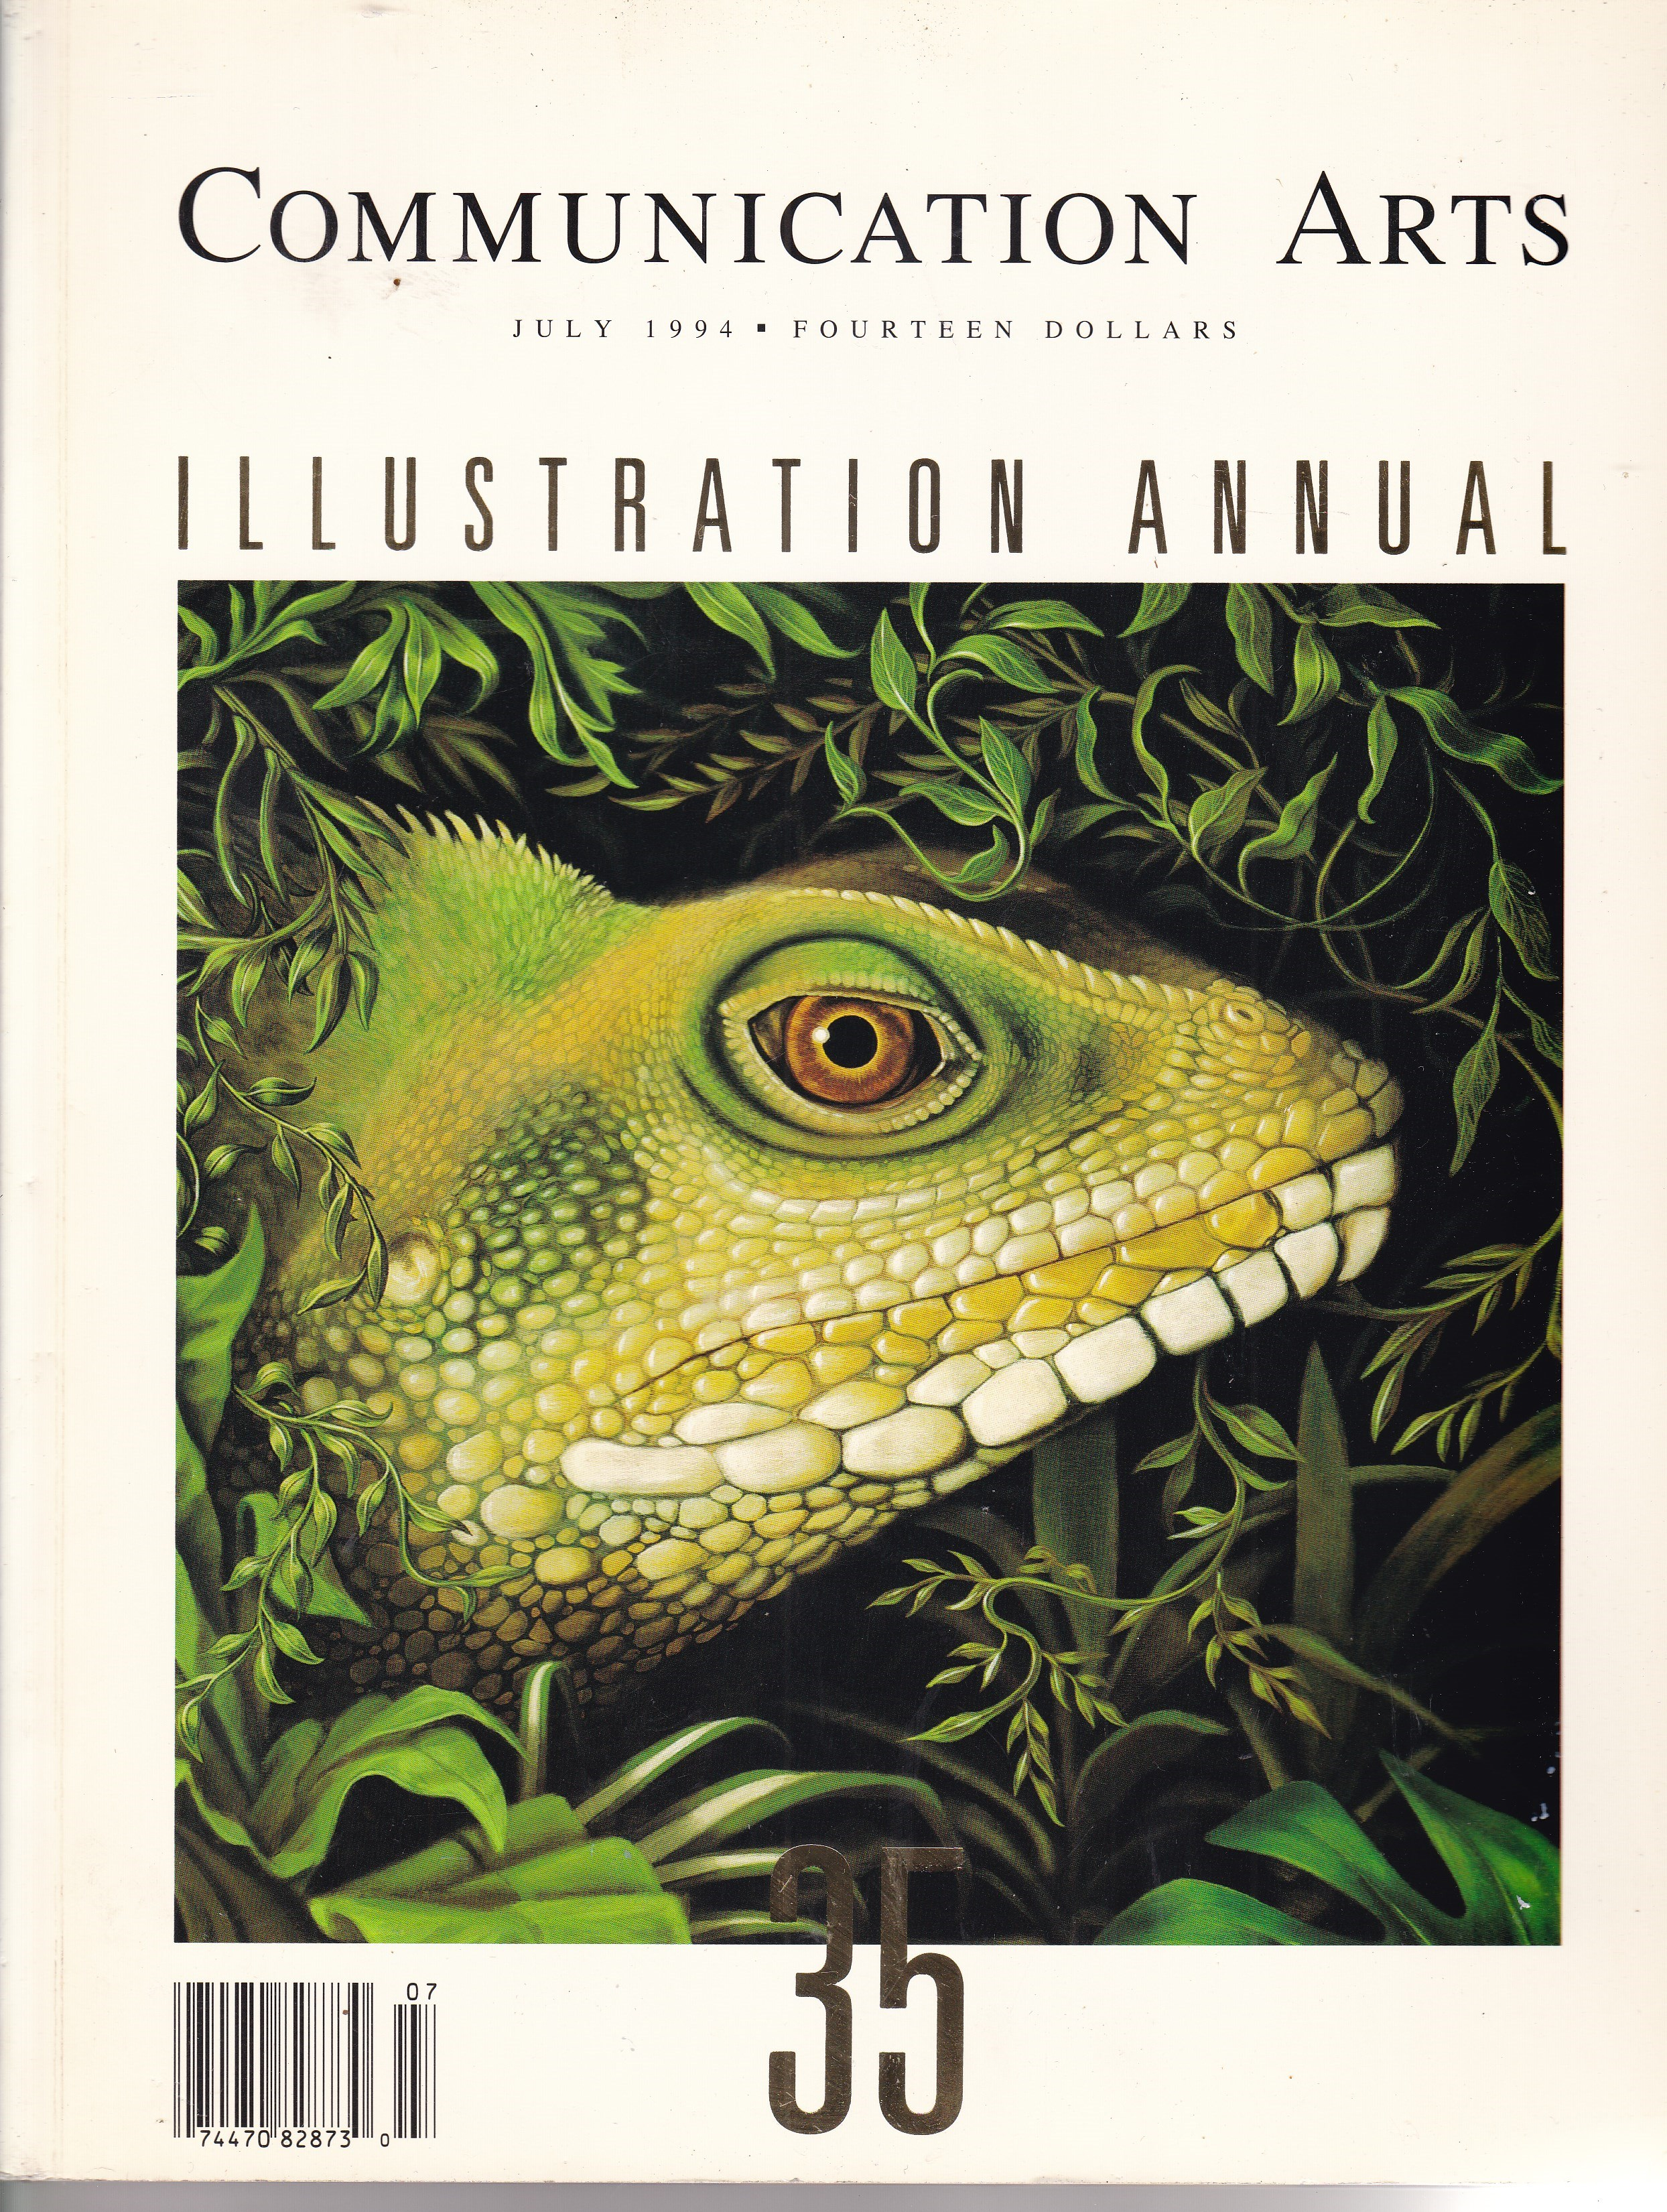 Image for Communication Arts Magazine Illustration Annual 35 July 1994